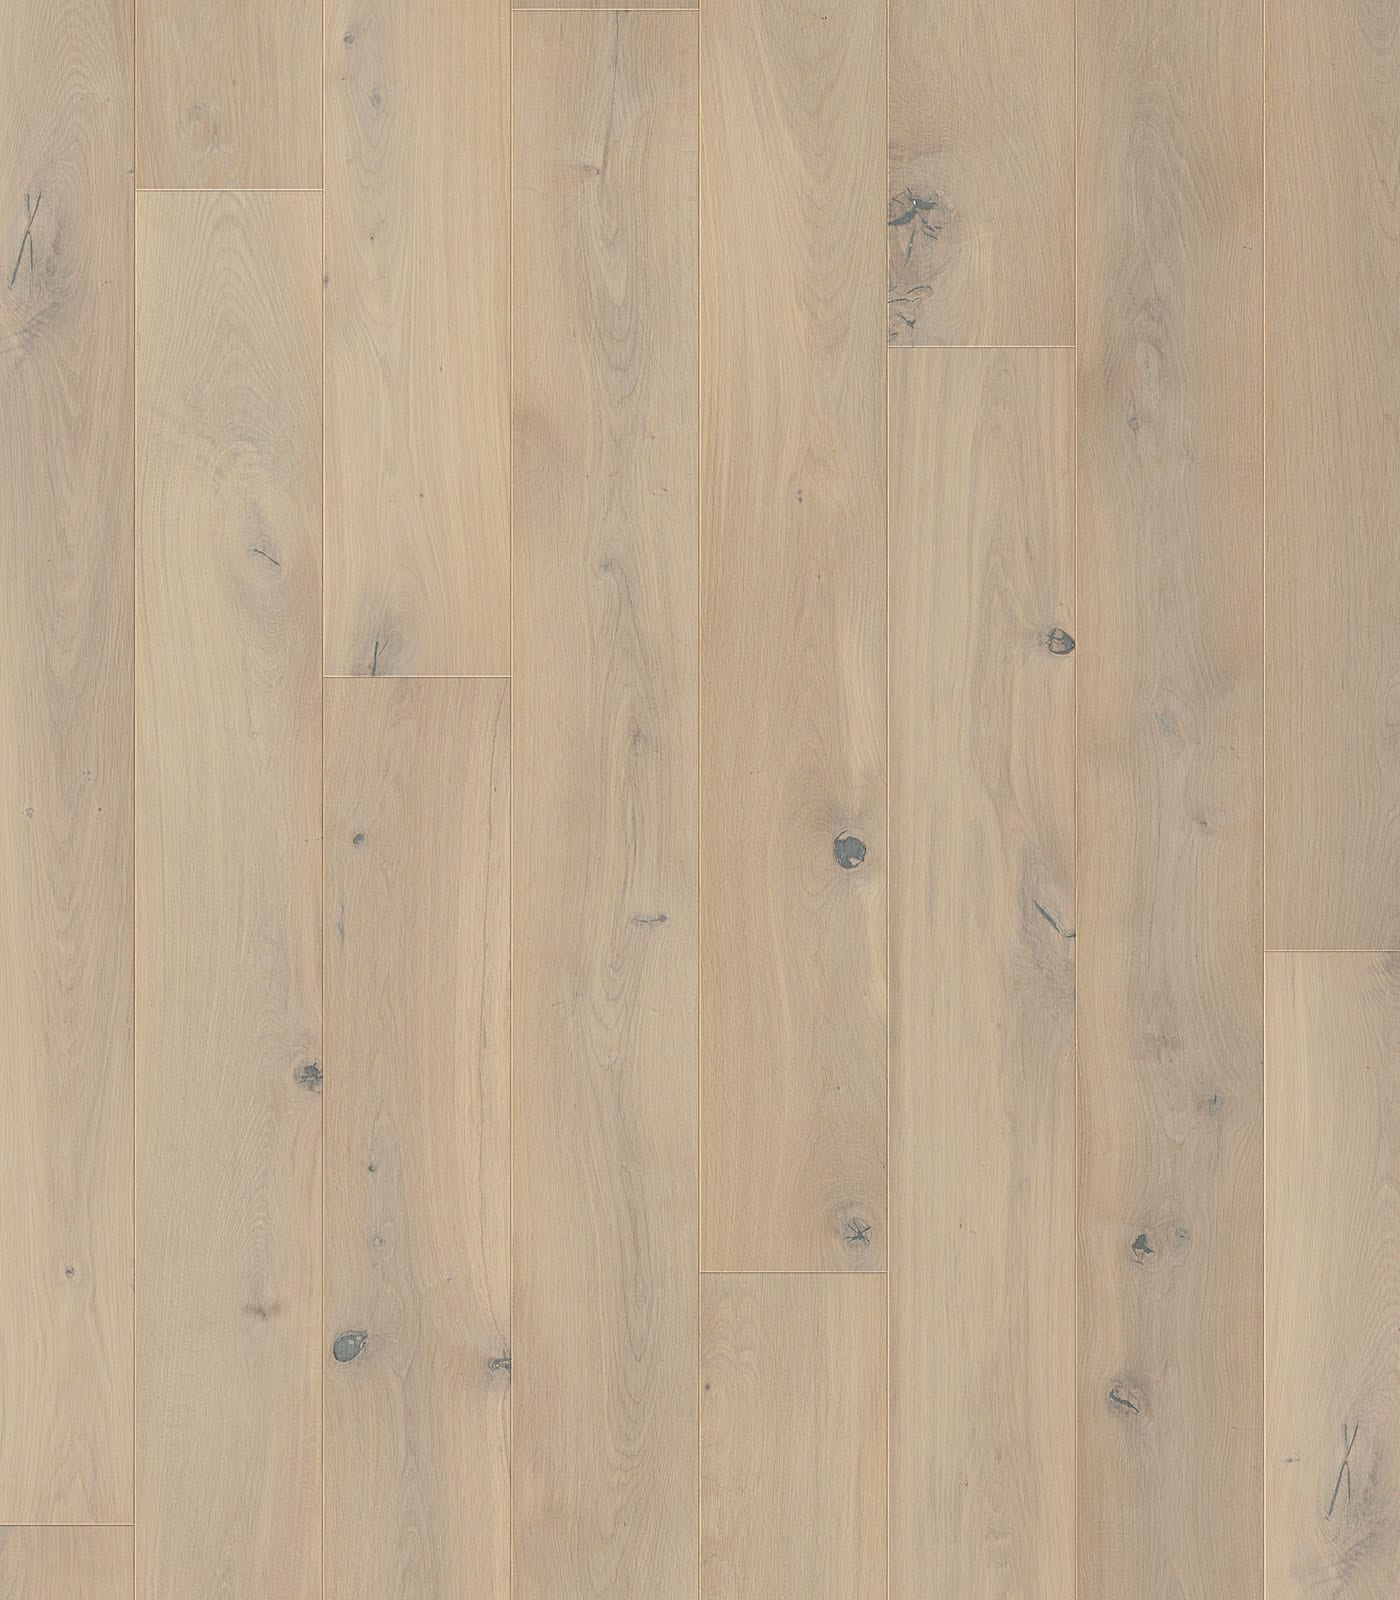 Taos-Lifestyle Collection-European Oak floors-flat